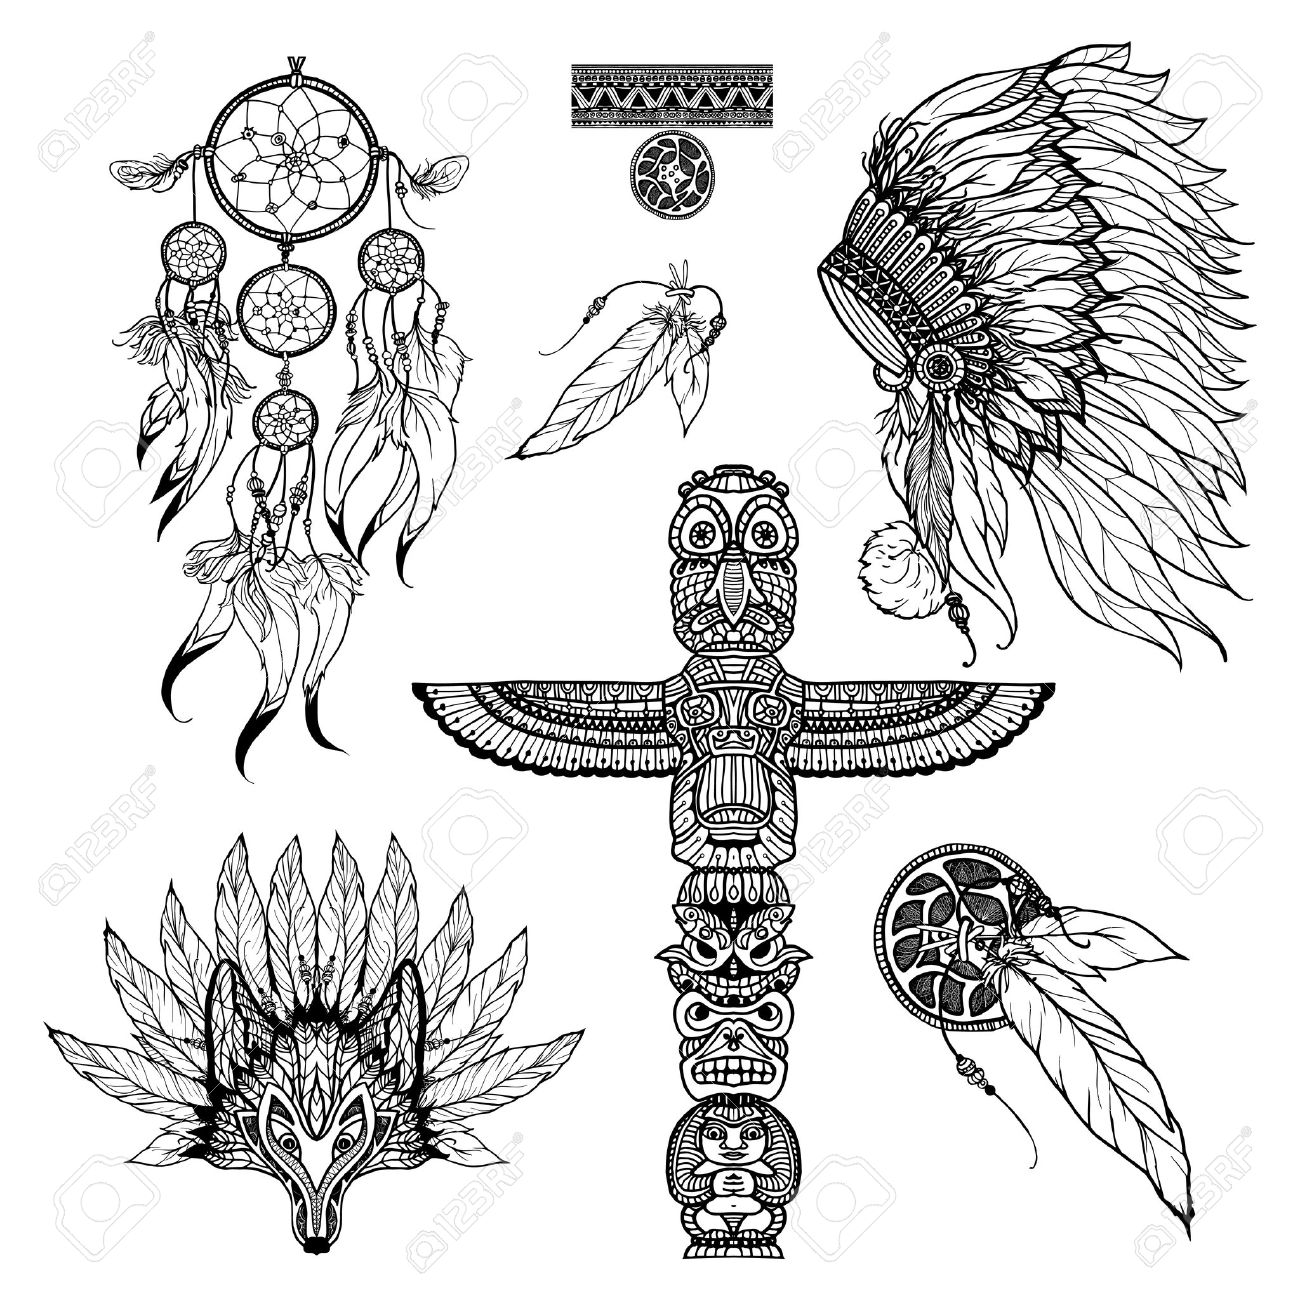 10 193 totem stock illustrations cliparts and royalty free totem